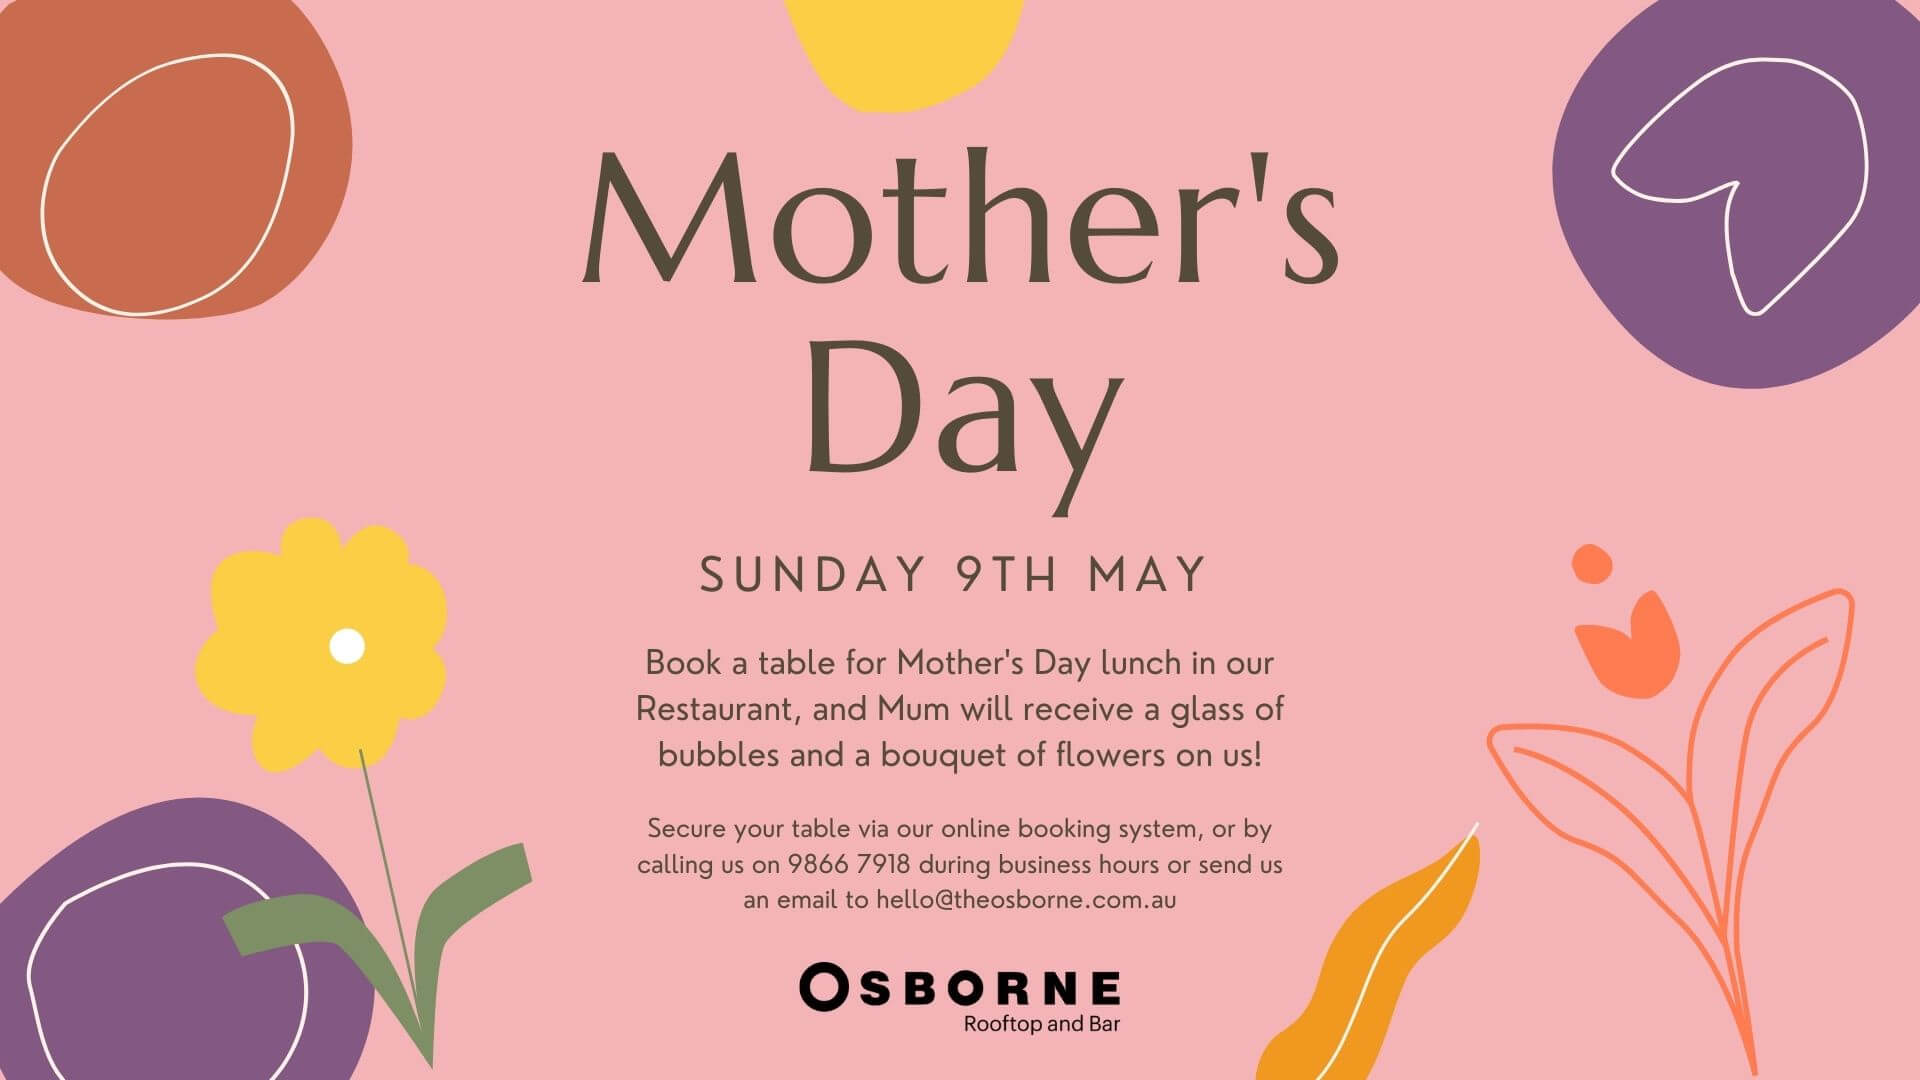 Mothers Day 2021 Lunch Osborne Rooftop South Yarra